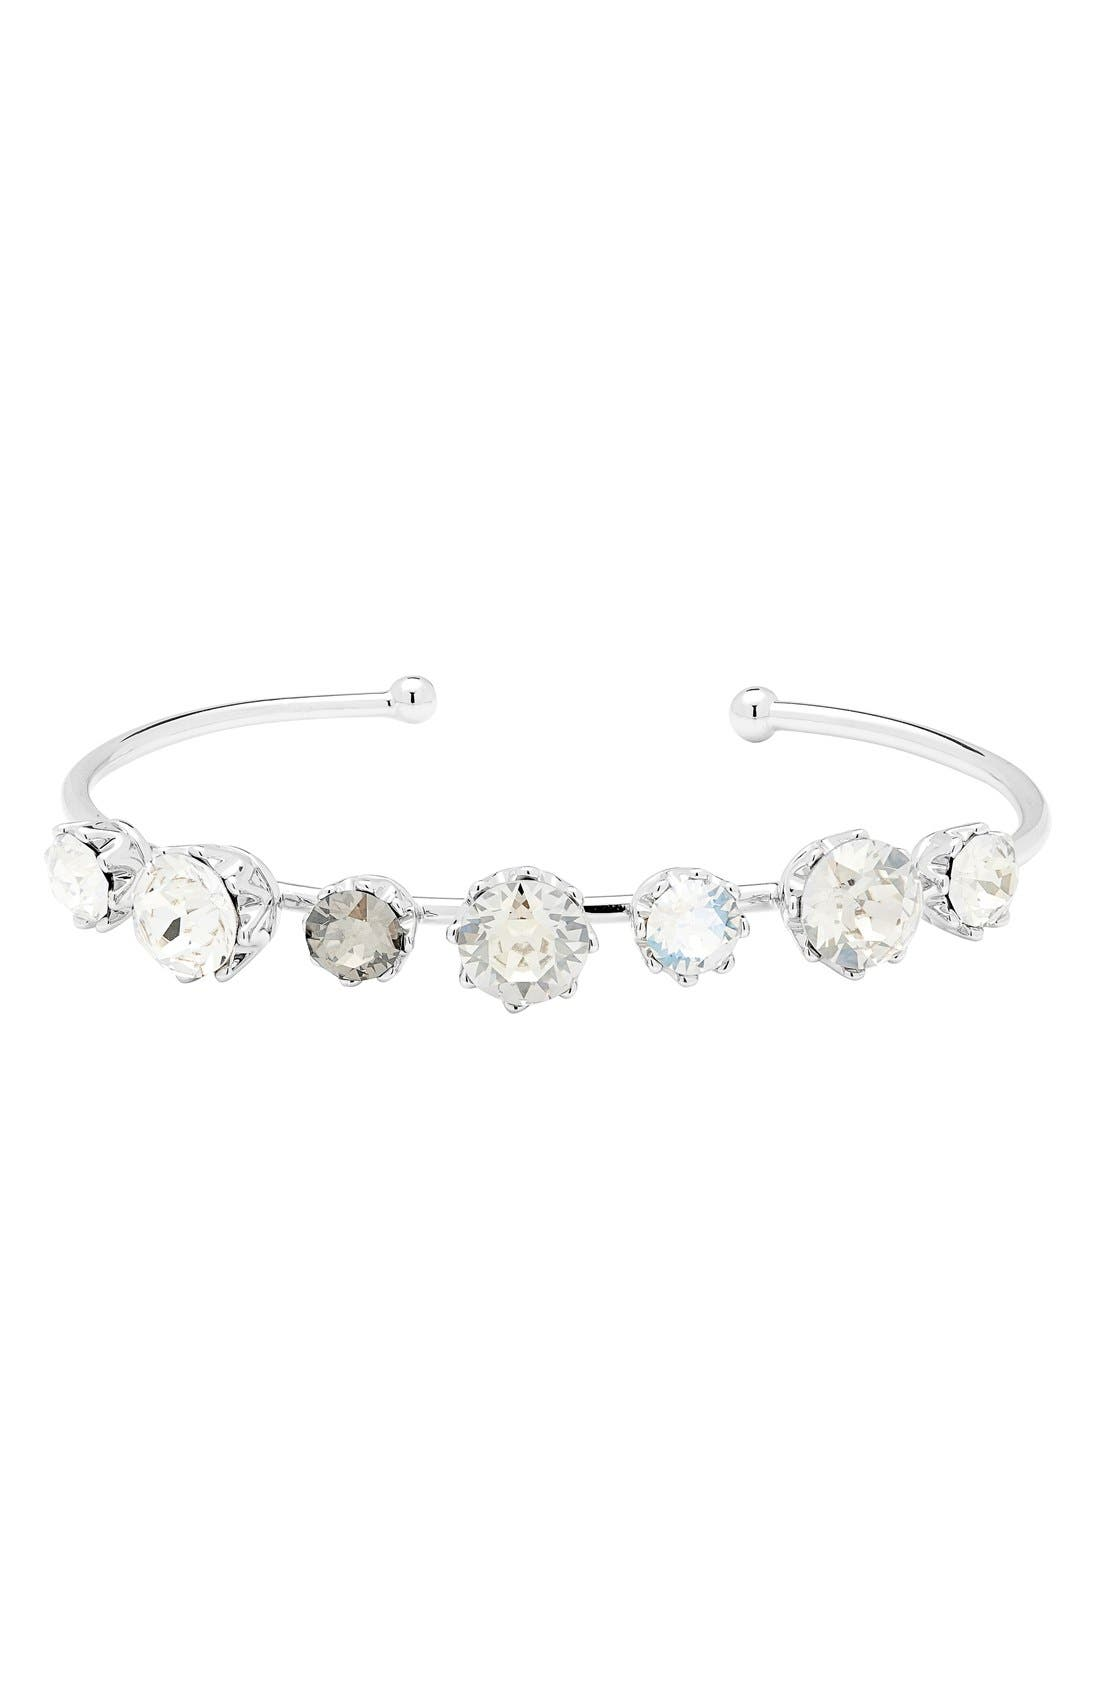 TED BAKER LONDON Cheska Crystal Fine Cuff